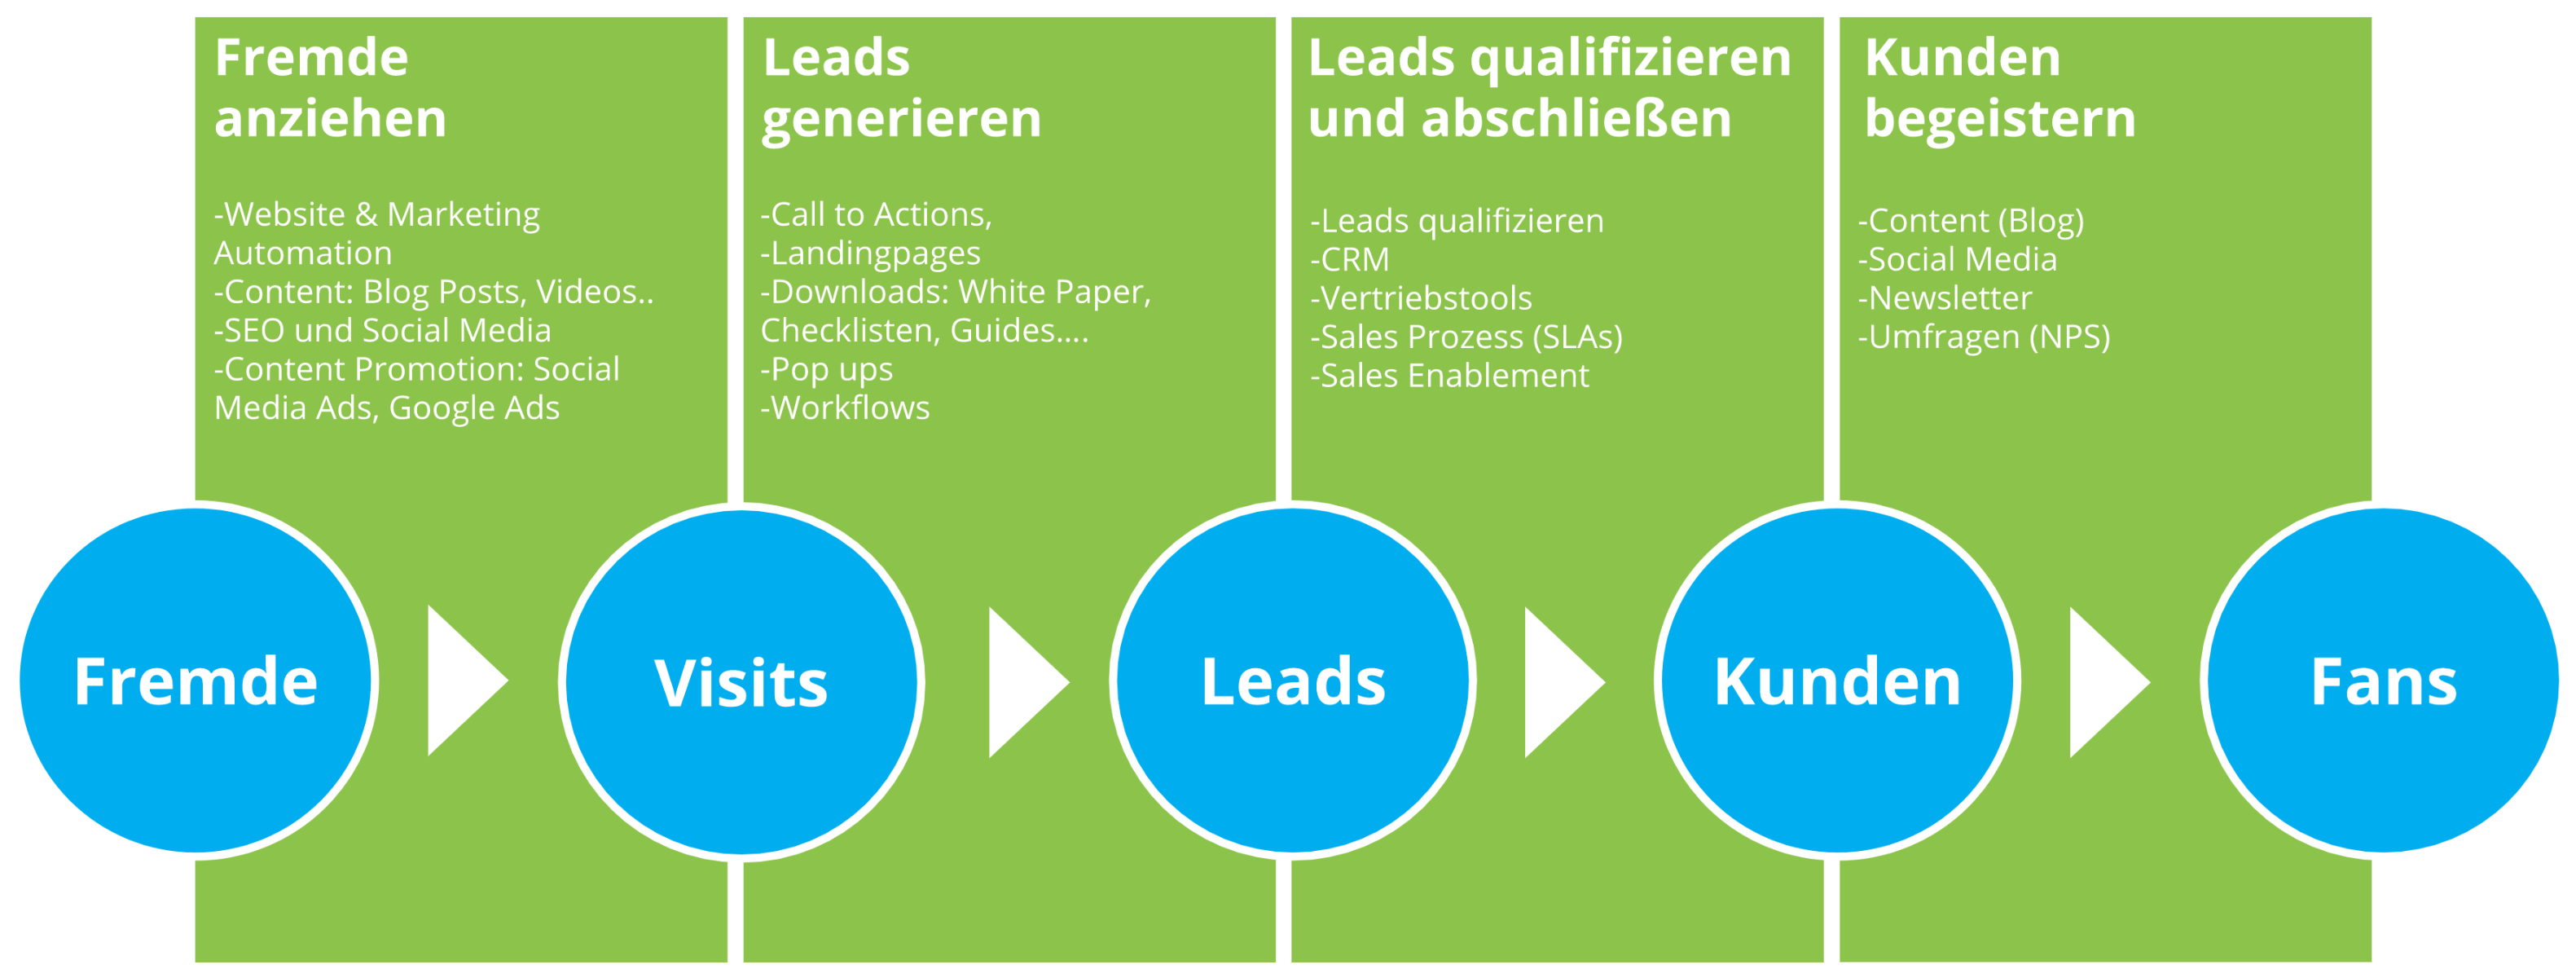 Der Inbound Marketing Prozess